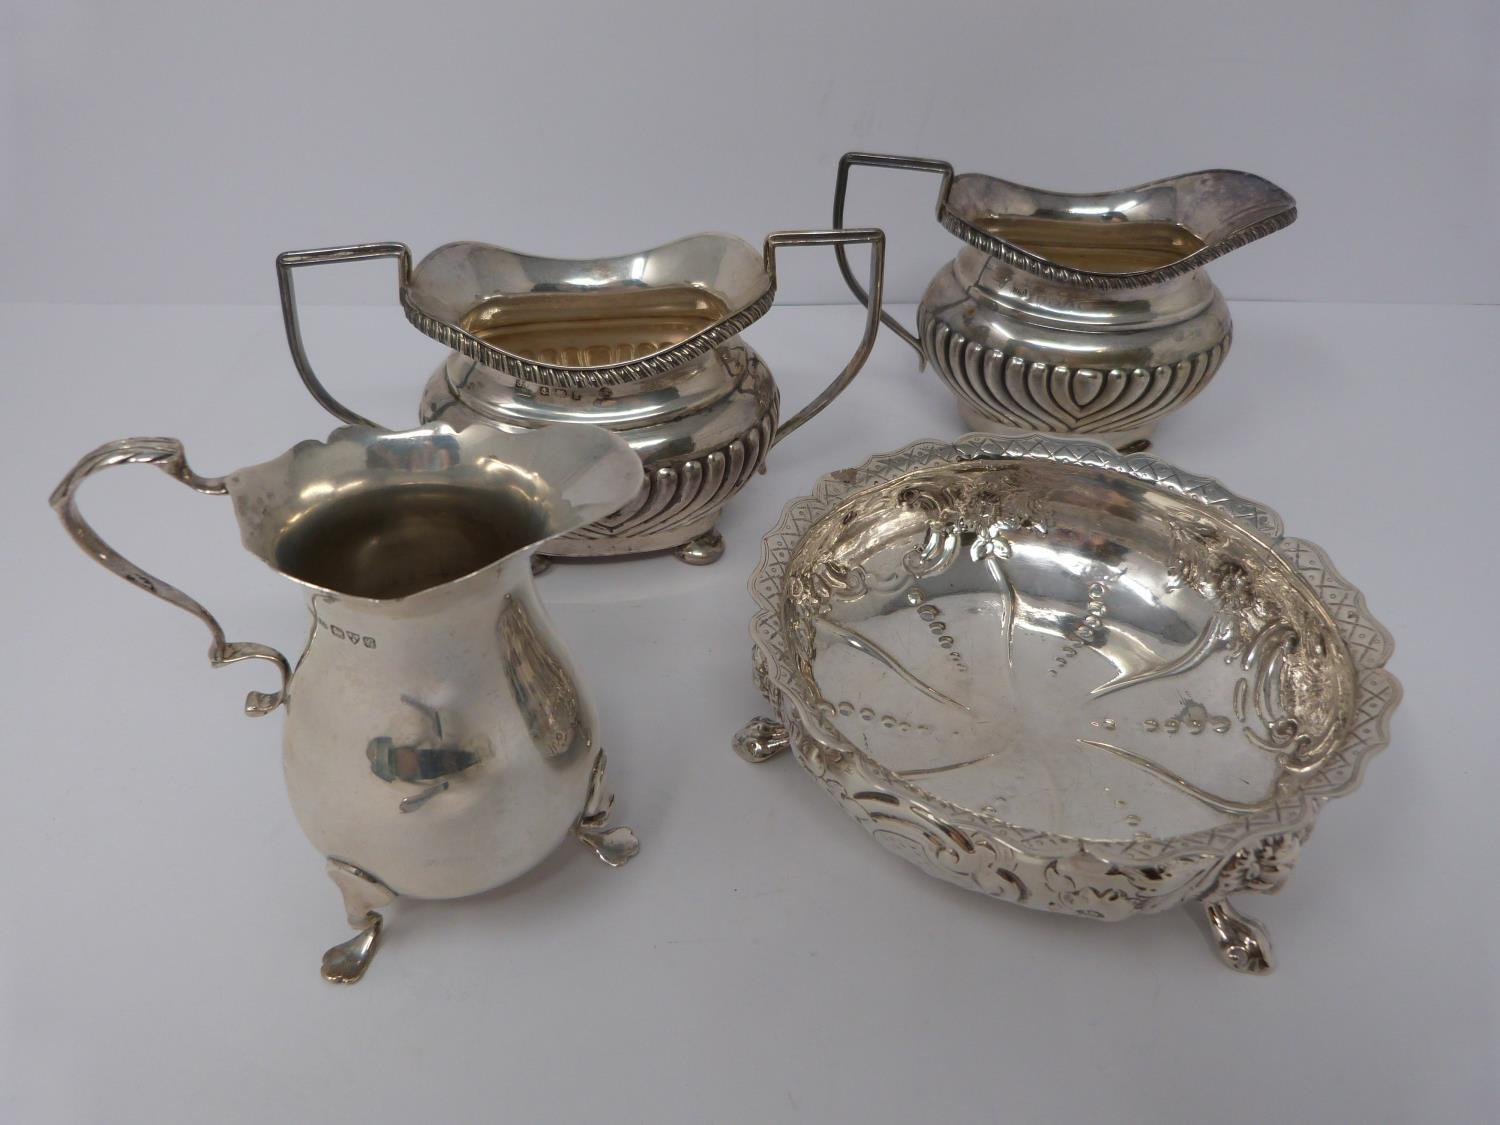 Two silver jugs, sugar and repousse work bowl. Bowl on three lions feet, 1857, London, Henry